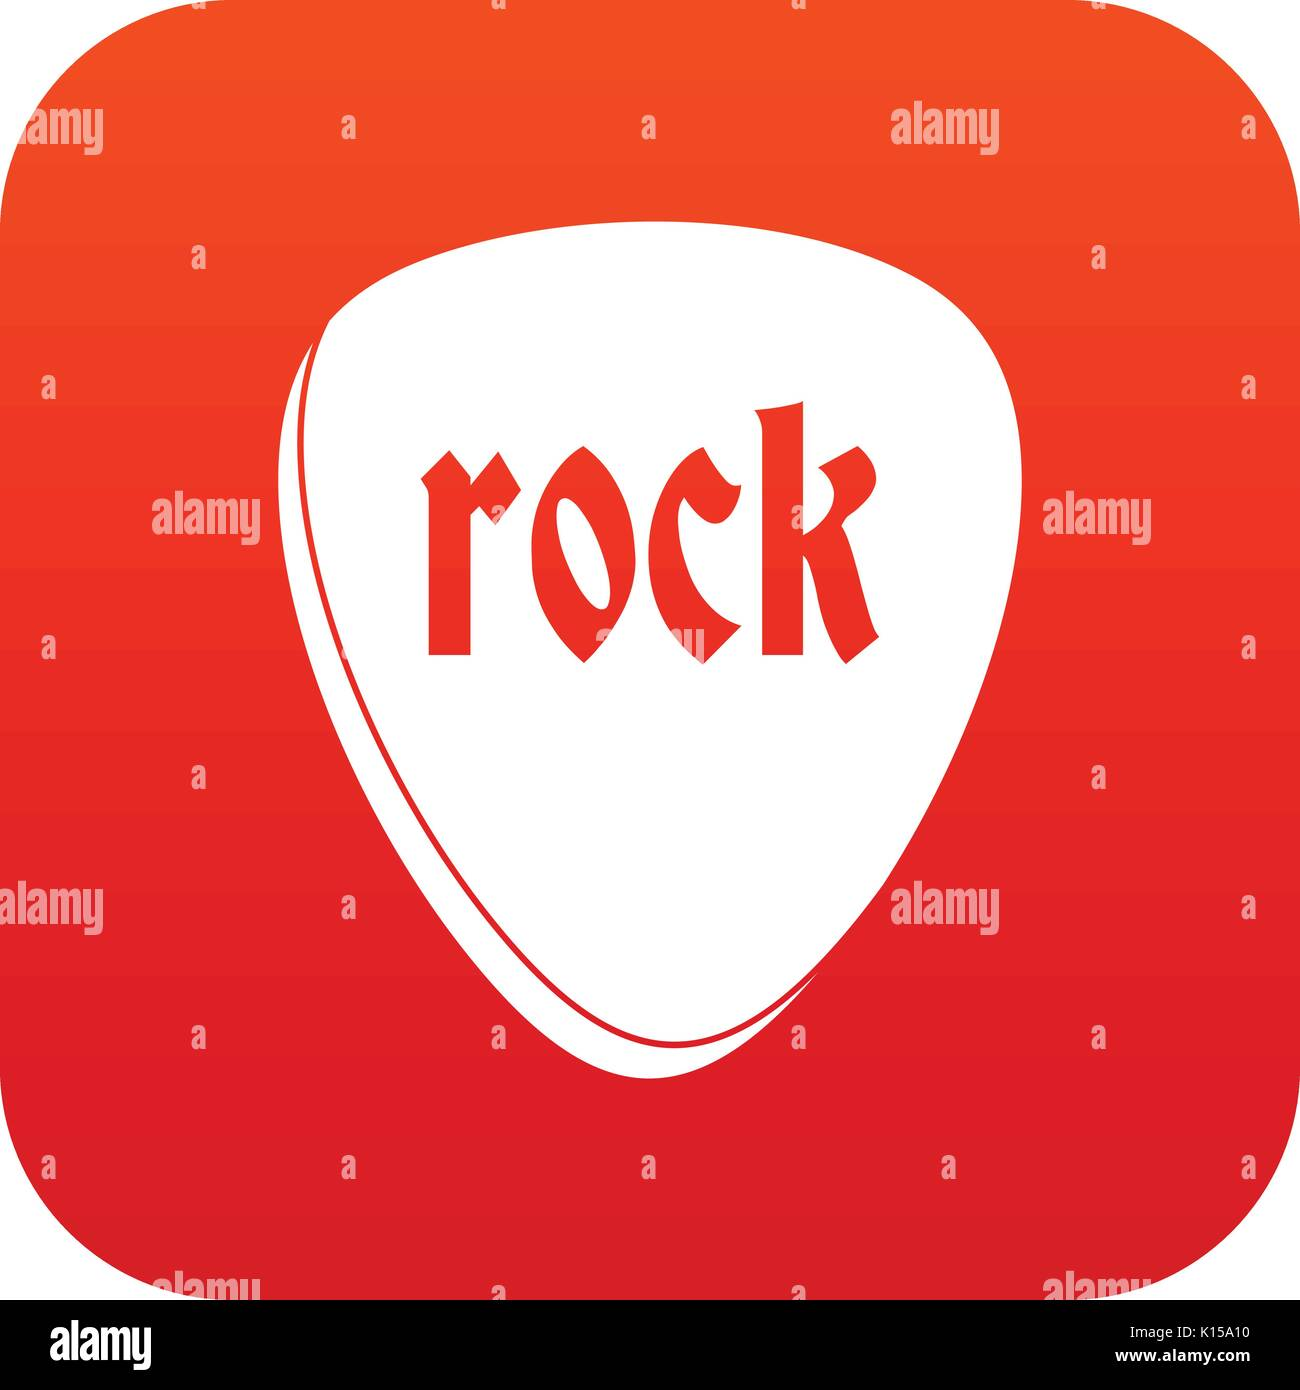 Rock stone icon digital red - Stock Image